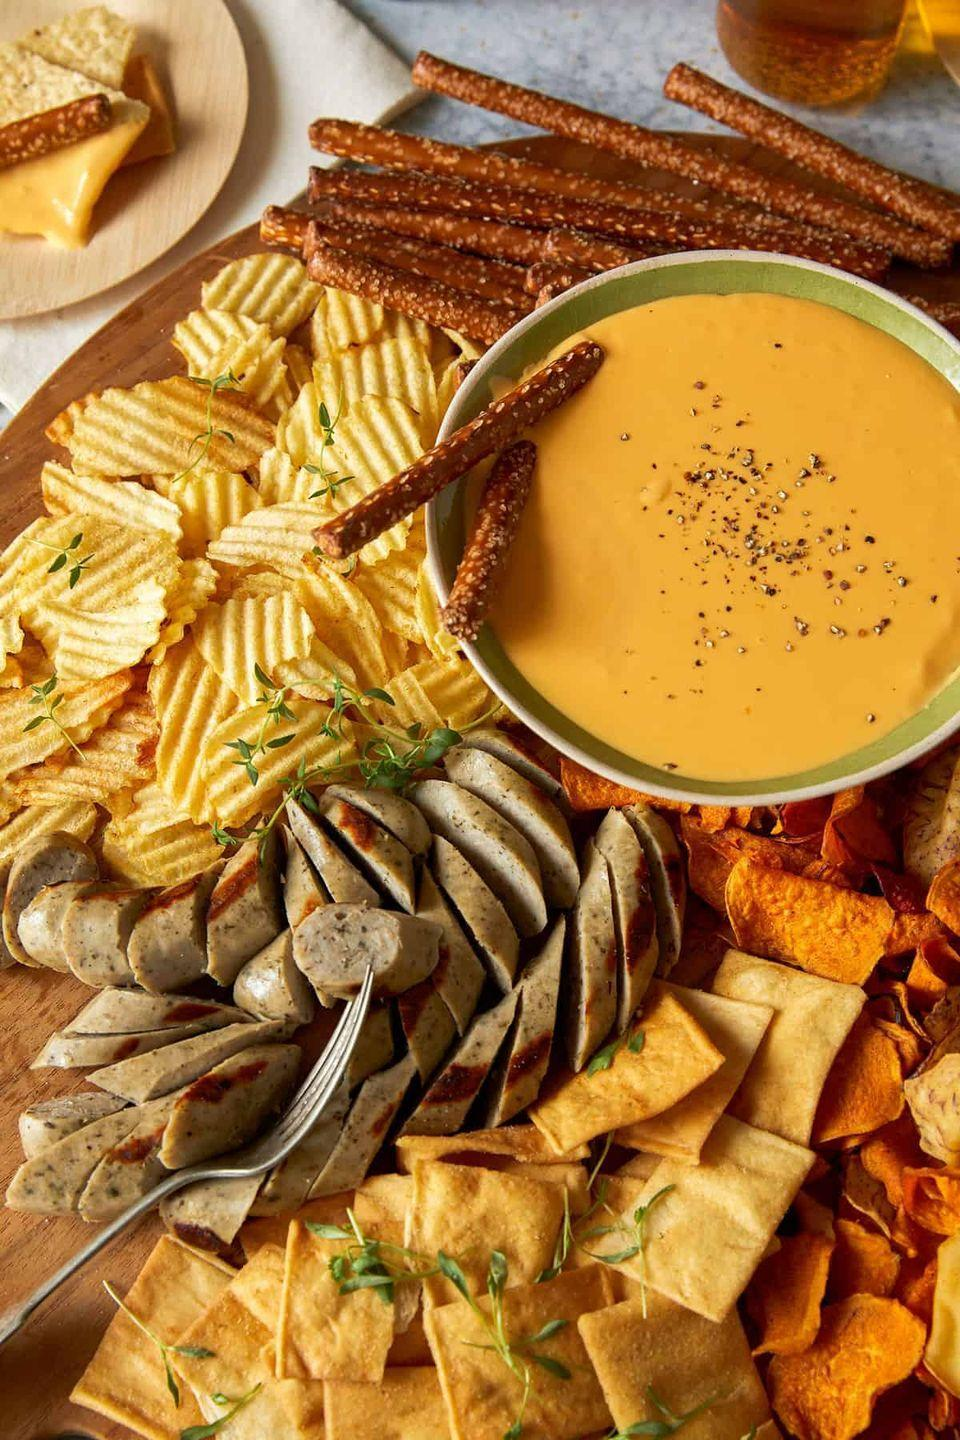 """<p>The combination of velvety cheese, tangy mustard, and your favorite beer is perfect for serving at any event. Try a variety of accompaniments like potato chips, pretzel rods, or even grilled bratwursts. </p><p><strong>Get the recipe at <a href=""""https://www.spoonforkbacon.com/crock-pot-beer-cheese-dip/"""" rel=""""nofollow noopener"""" target=""""_blank"""" data-ylk=""""slk:Spoon Fork Bacon"""" class=""""link rapid-noclick-resp"""">Spoon Fork Bacon</a>.</strong></p>"""